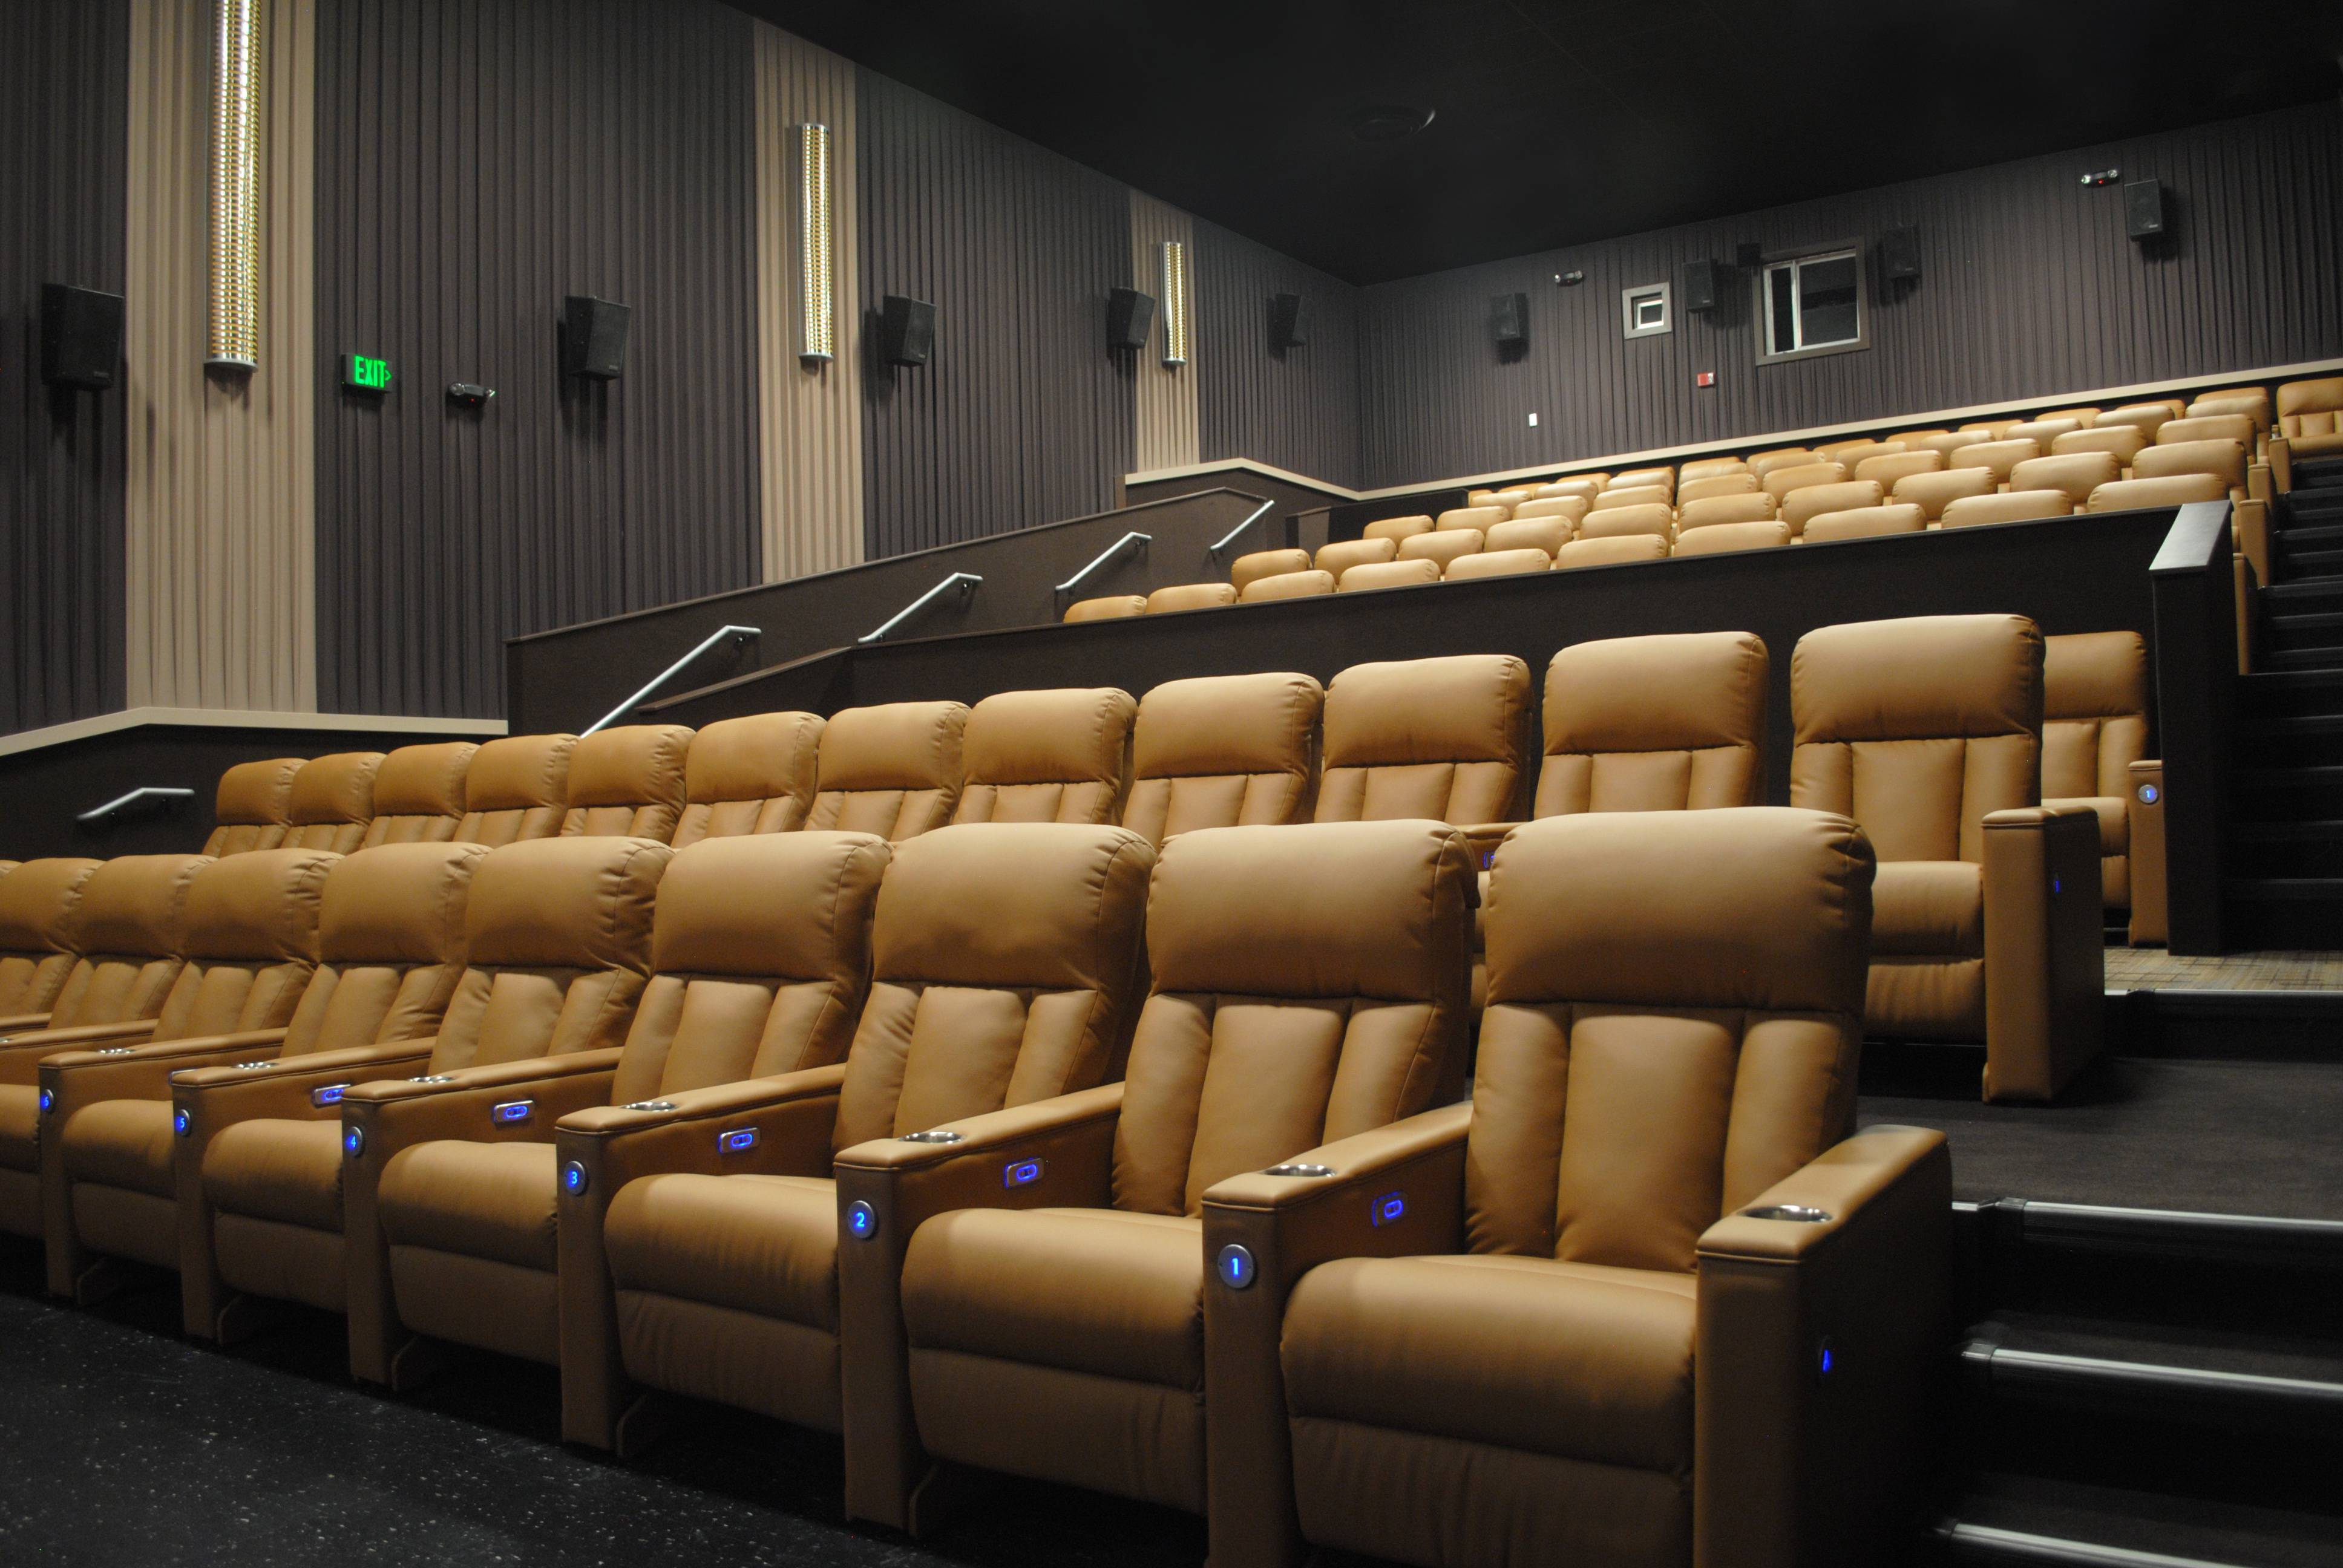 Charlestowne Mall Classic Cinemas is installing all new lounge-style chairs in its theaters.